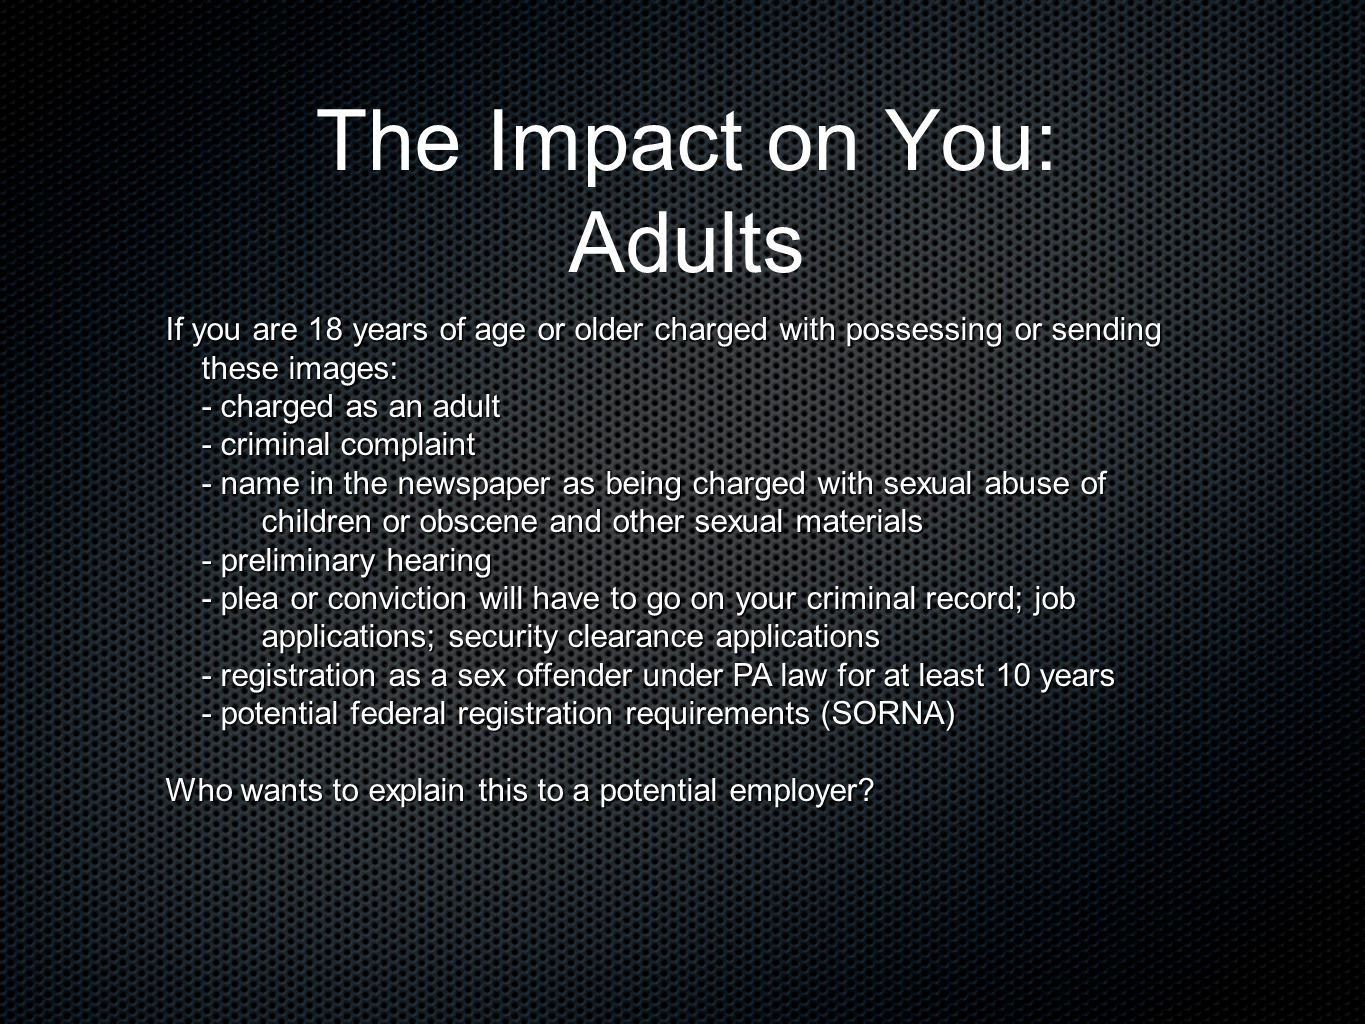 The Impact on You: Adults